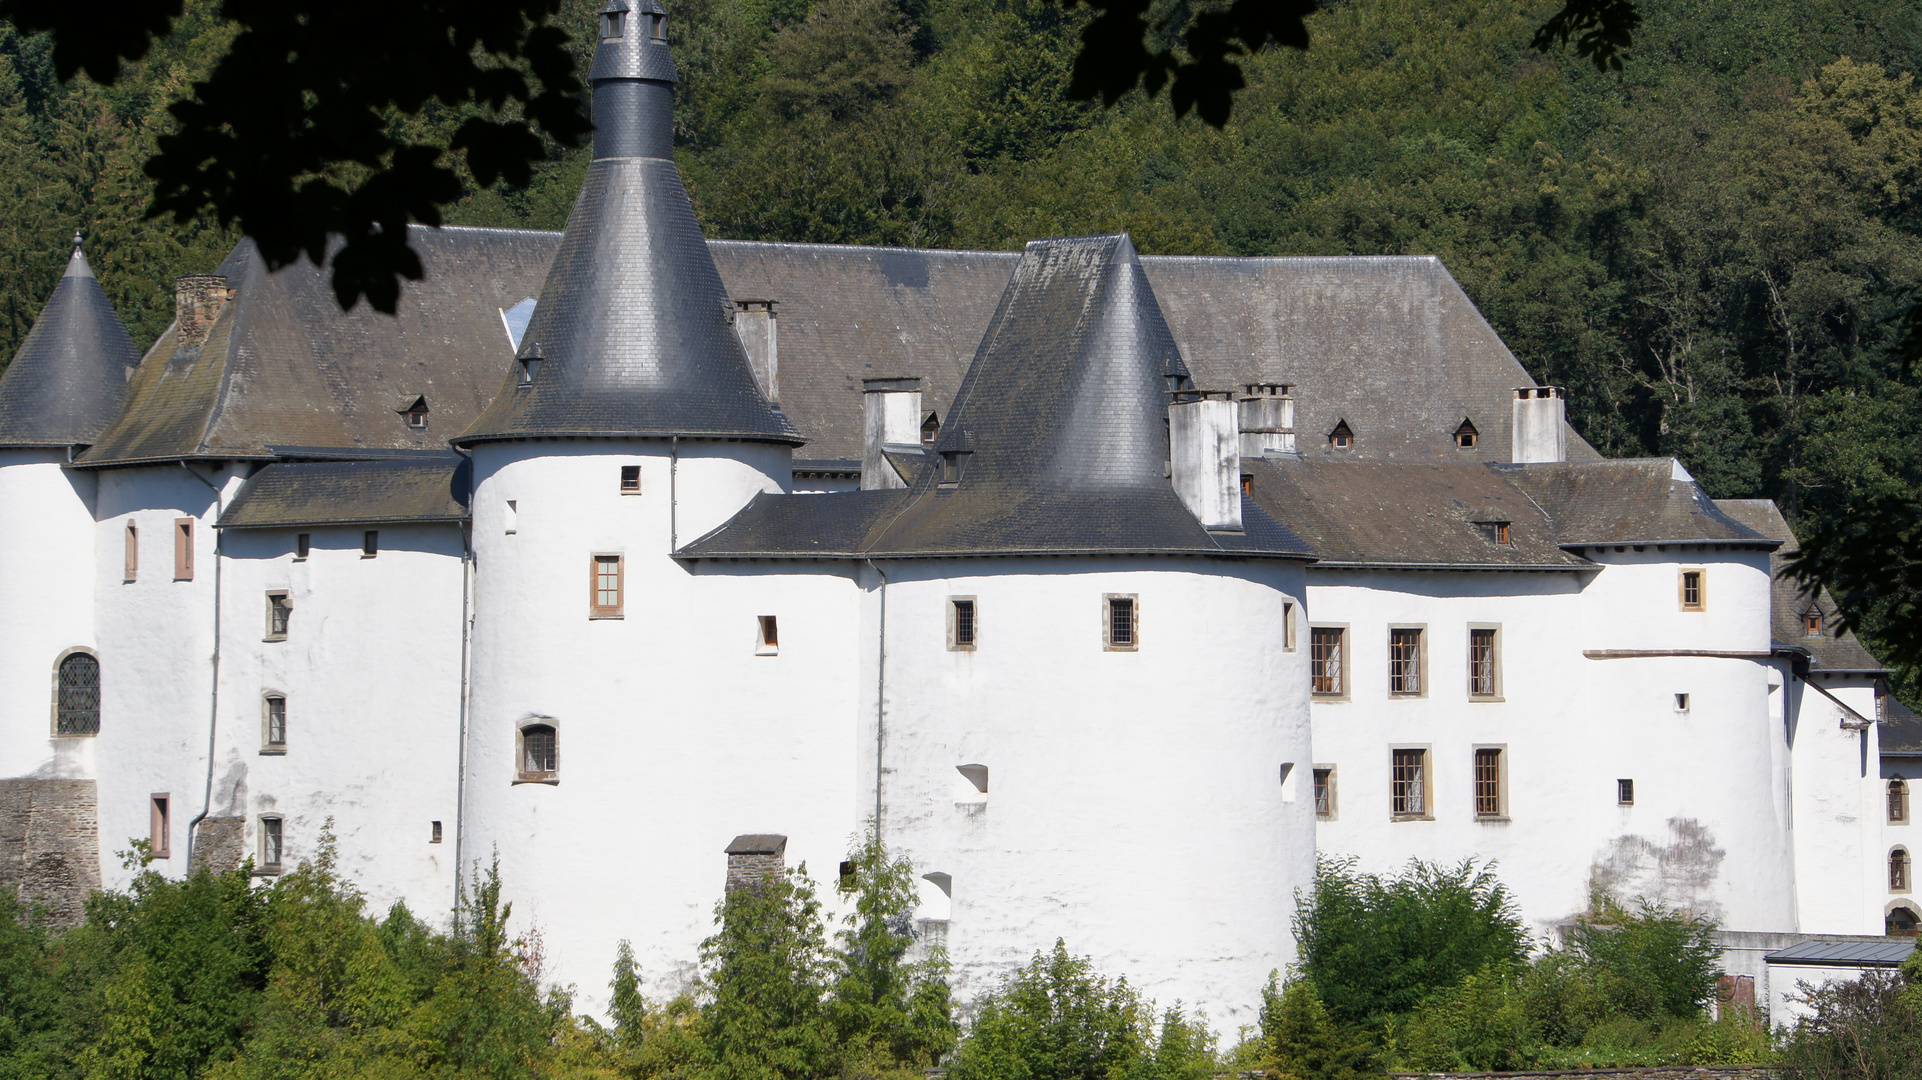 Schloss in Clervaux(Luxemburg)